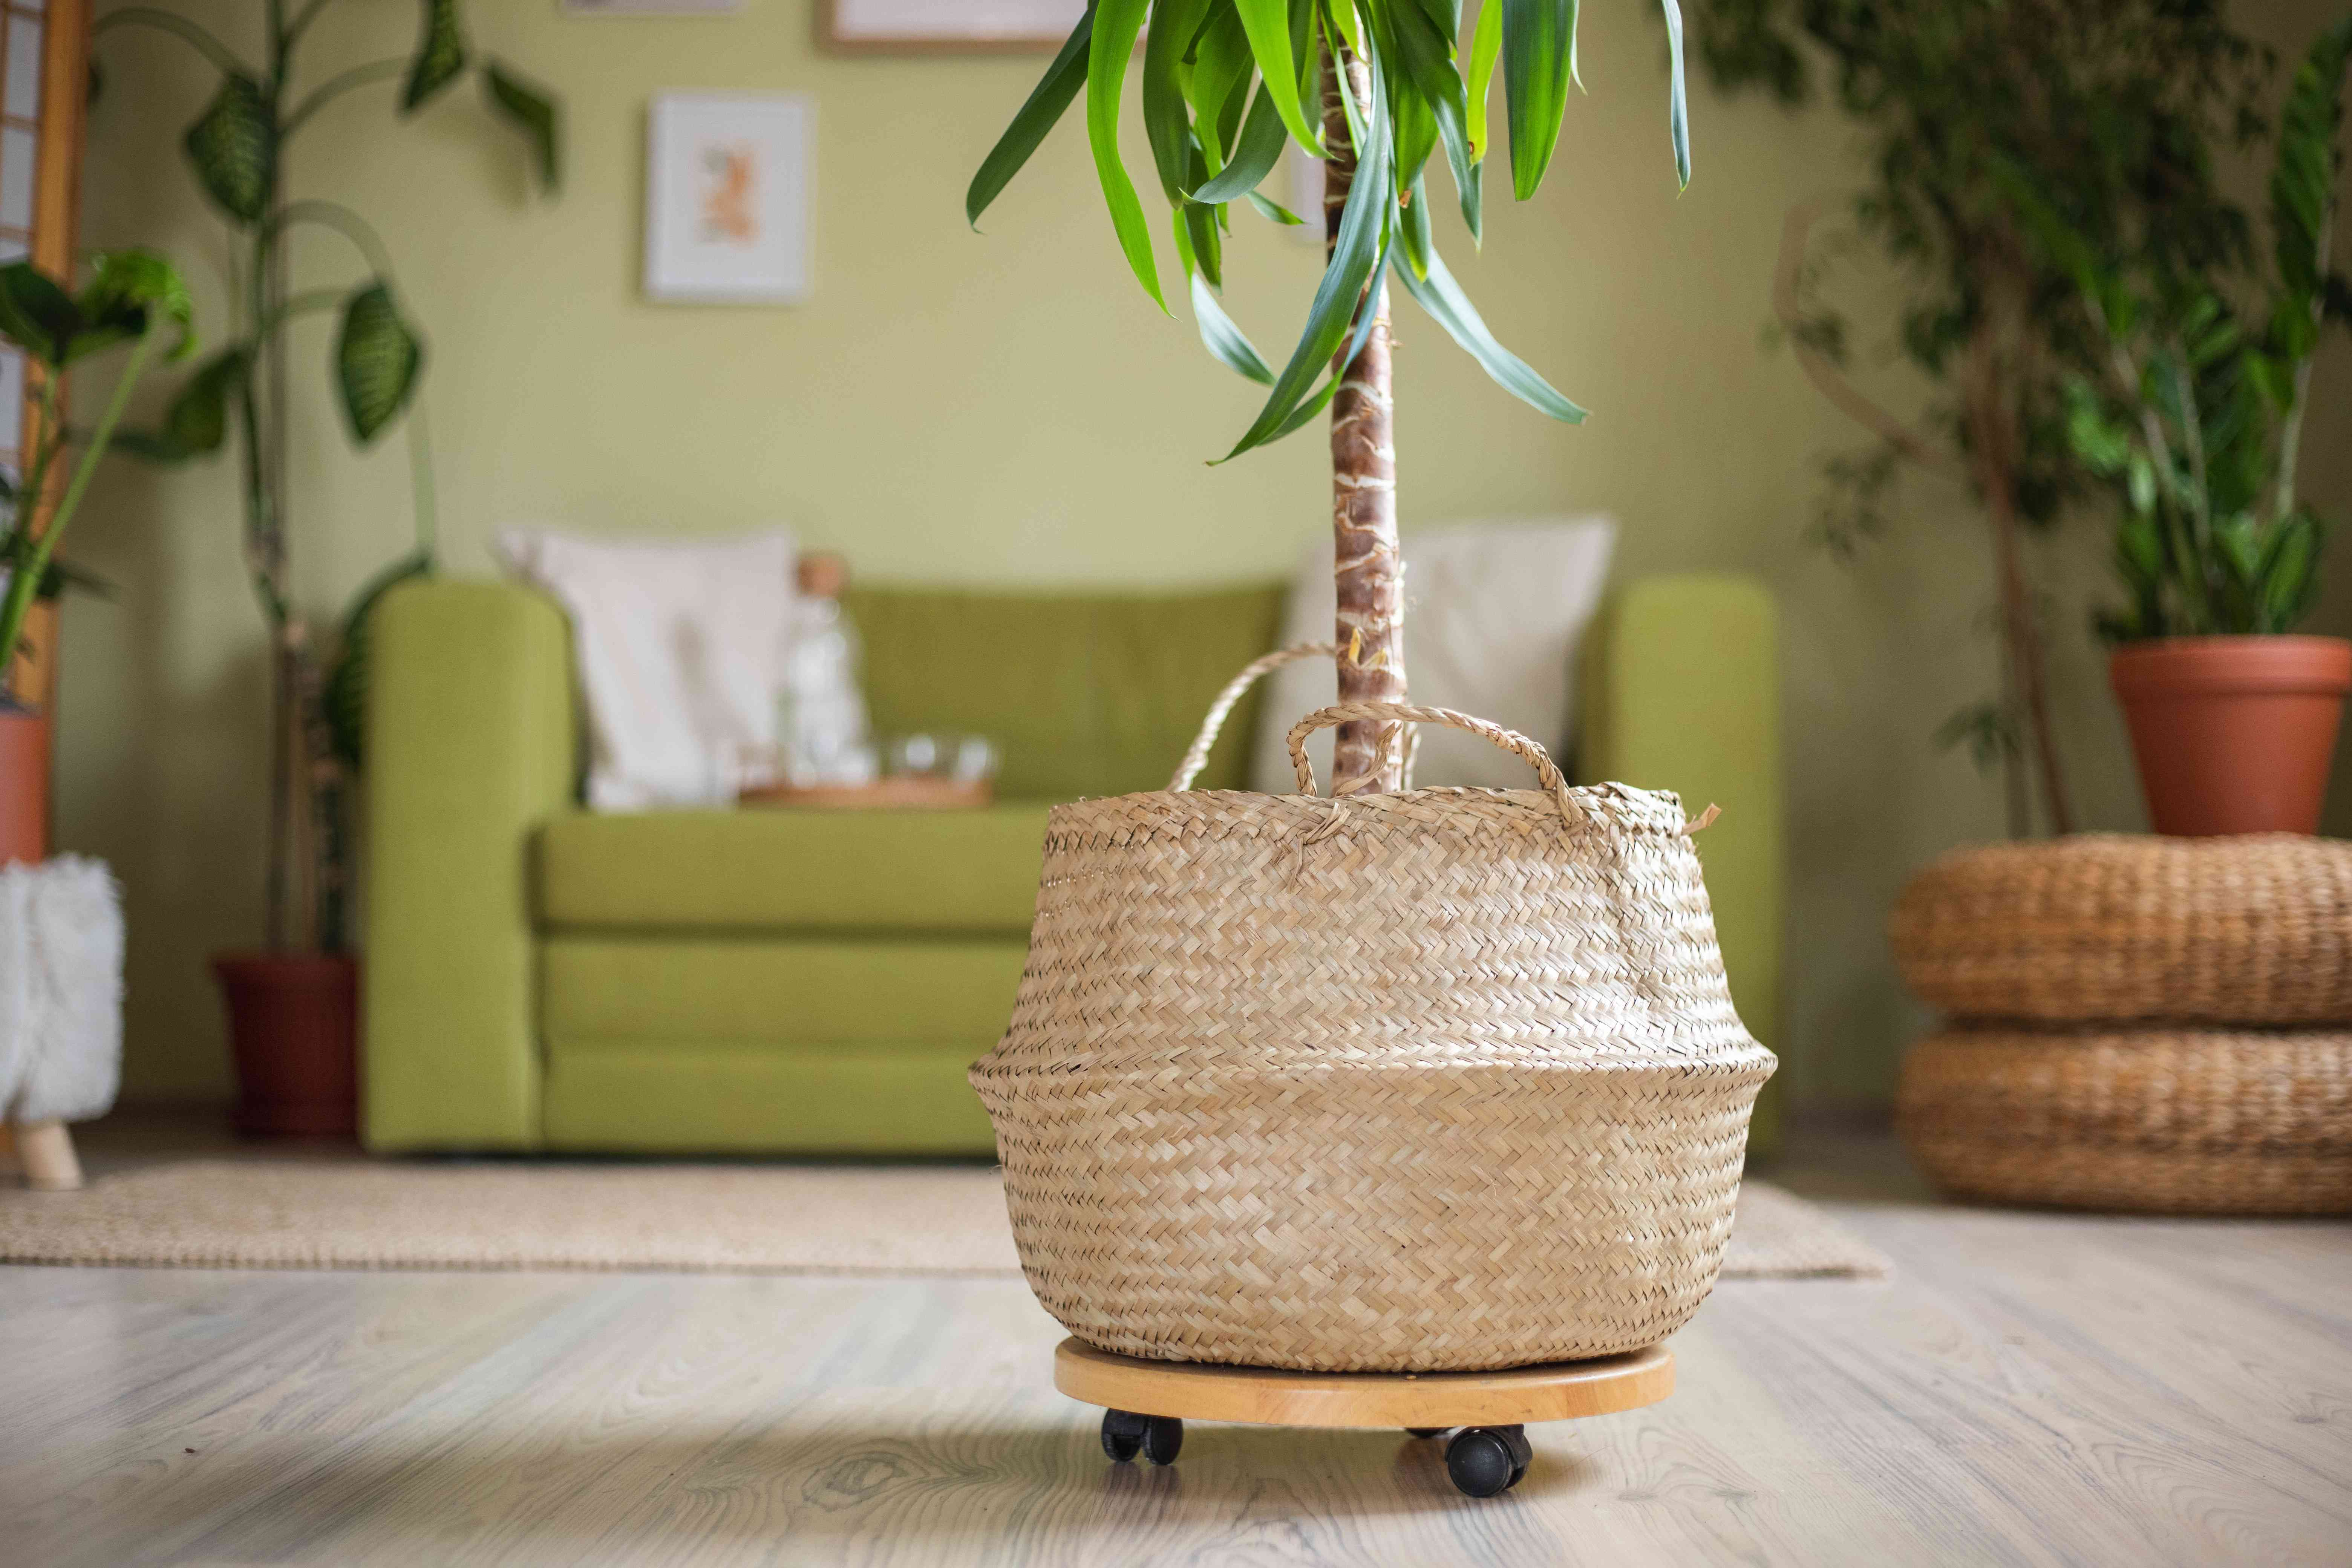 large house plant in wicker basket sits on wooden tray with wheels for moving around